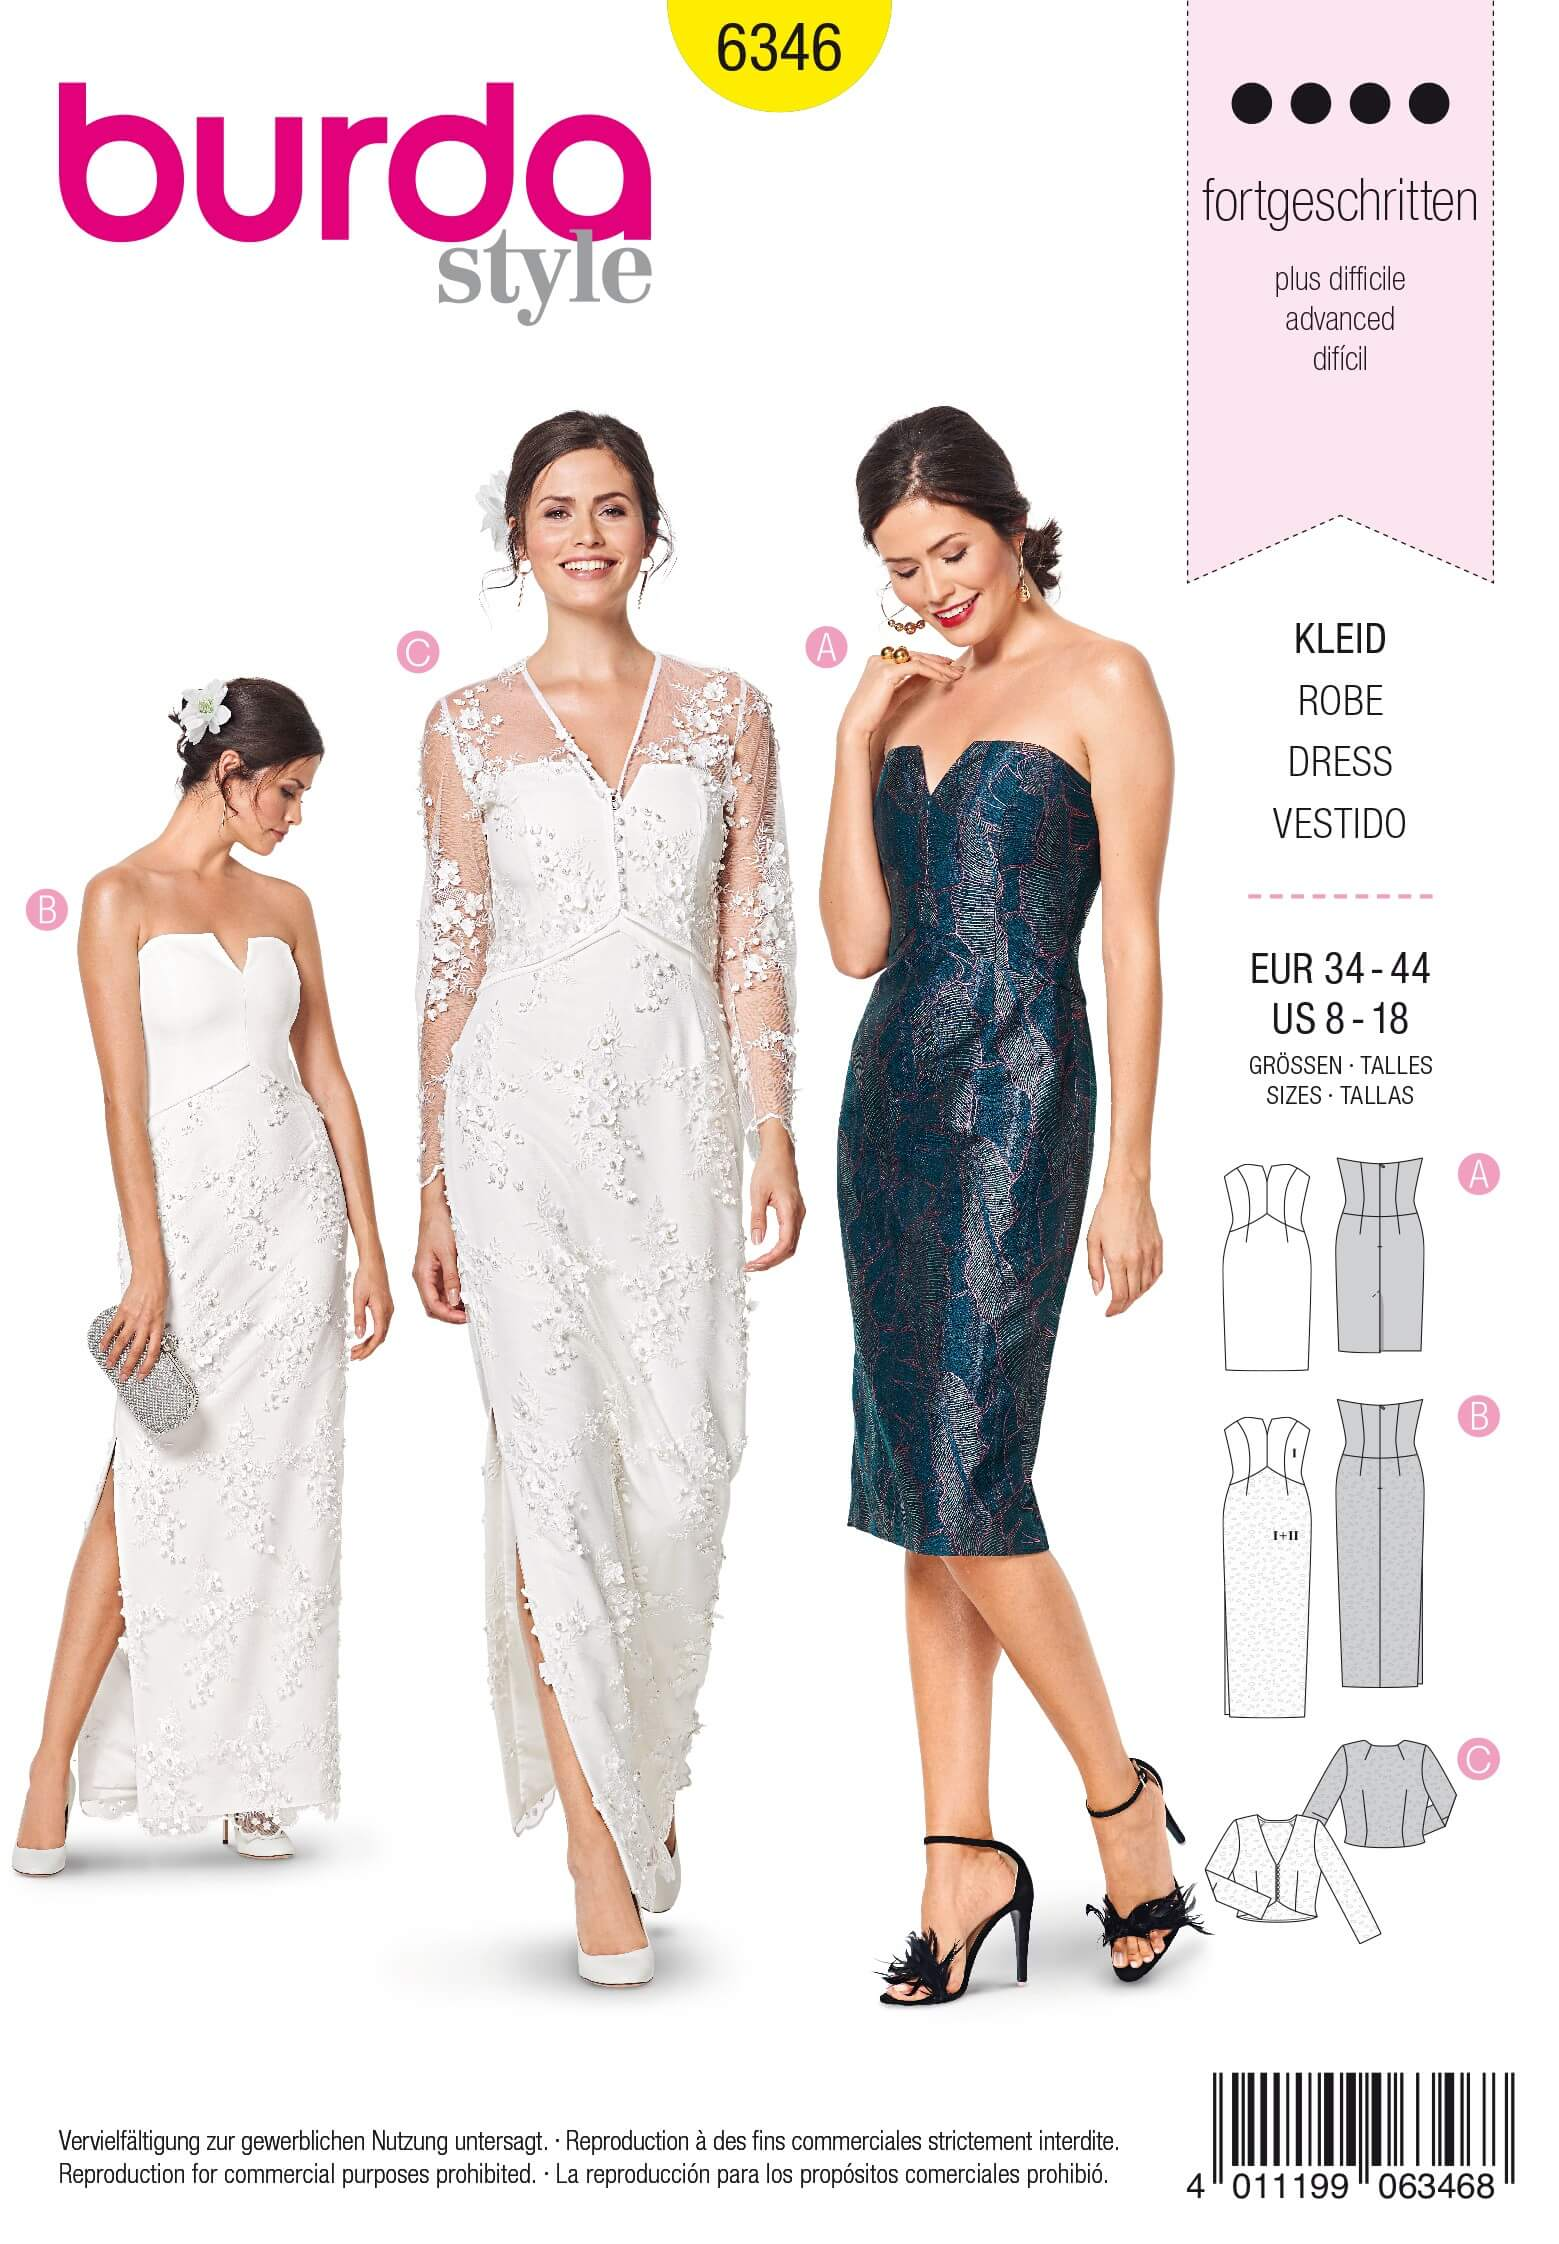 Burda Style Misses' Bustier Dress V Neck Special Occasion  Sewing Pattern 6346